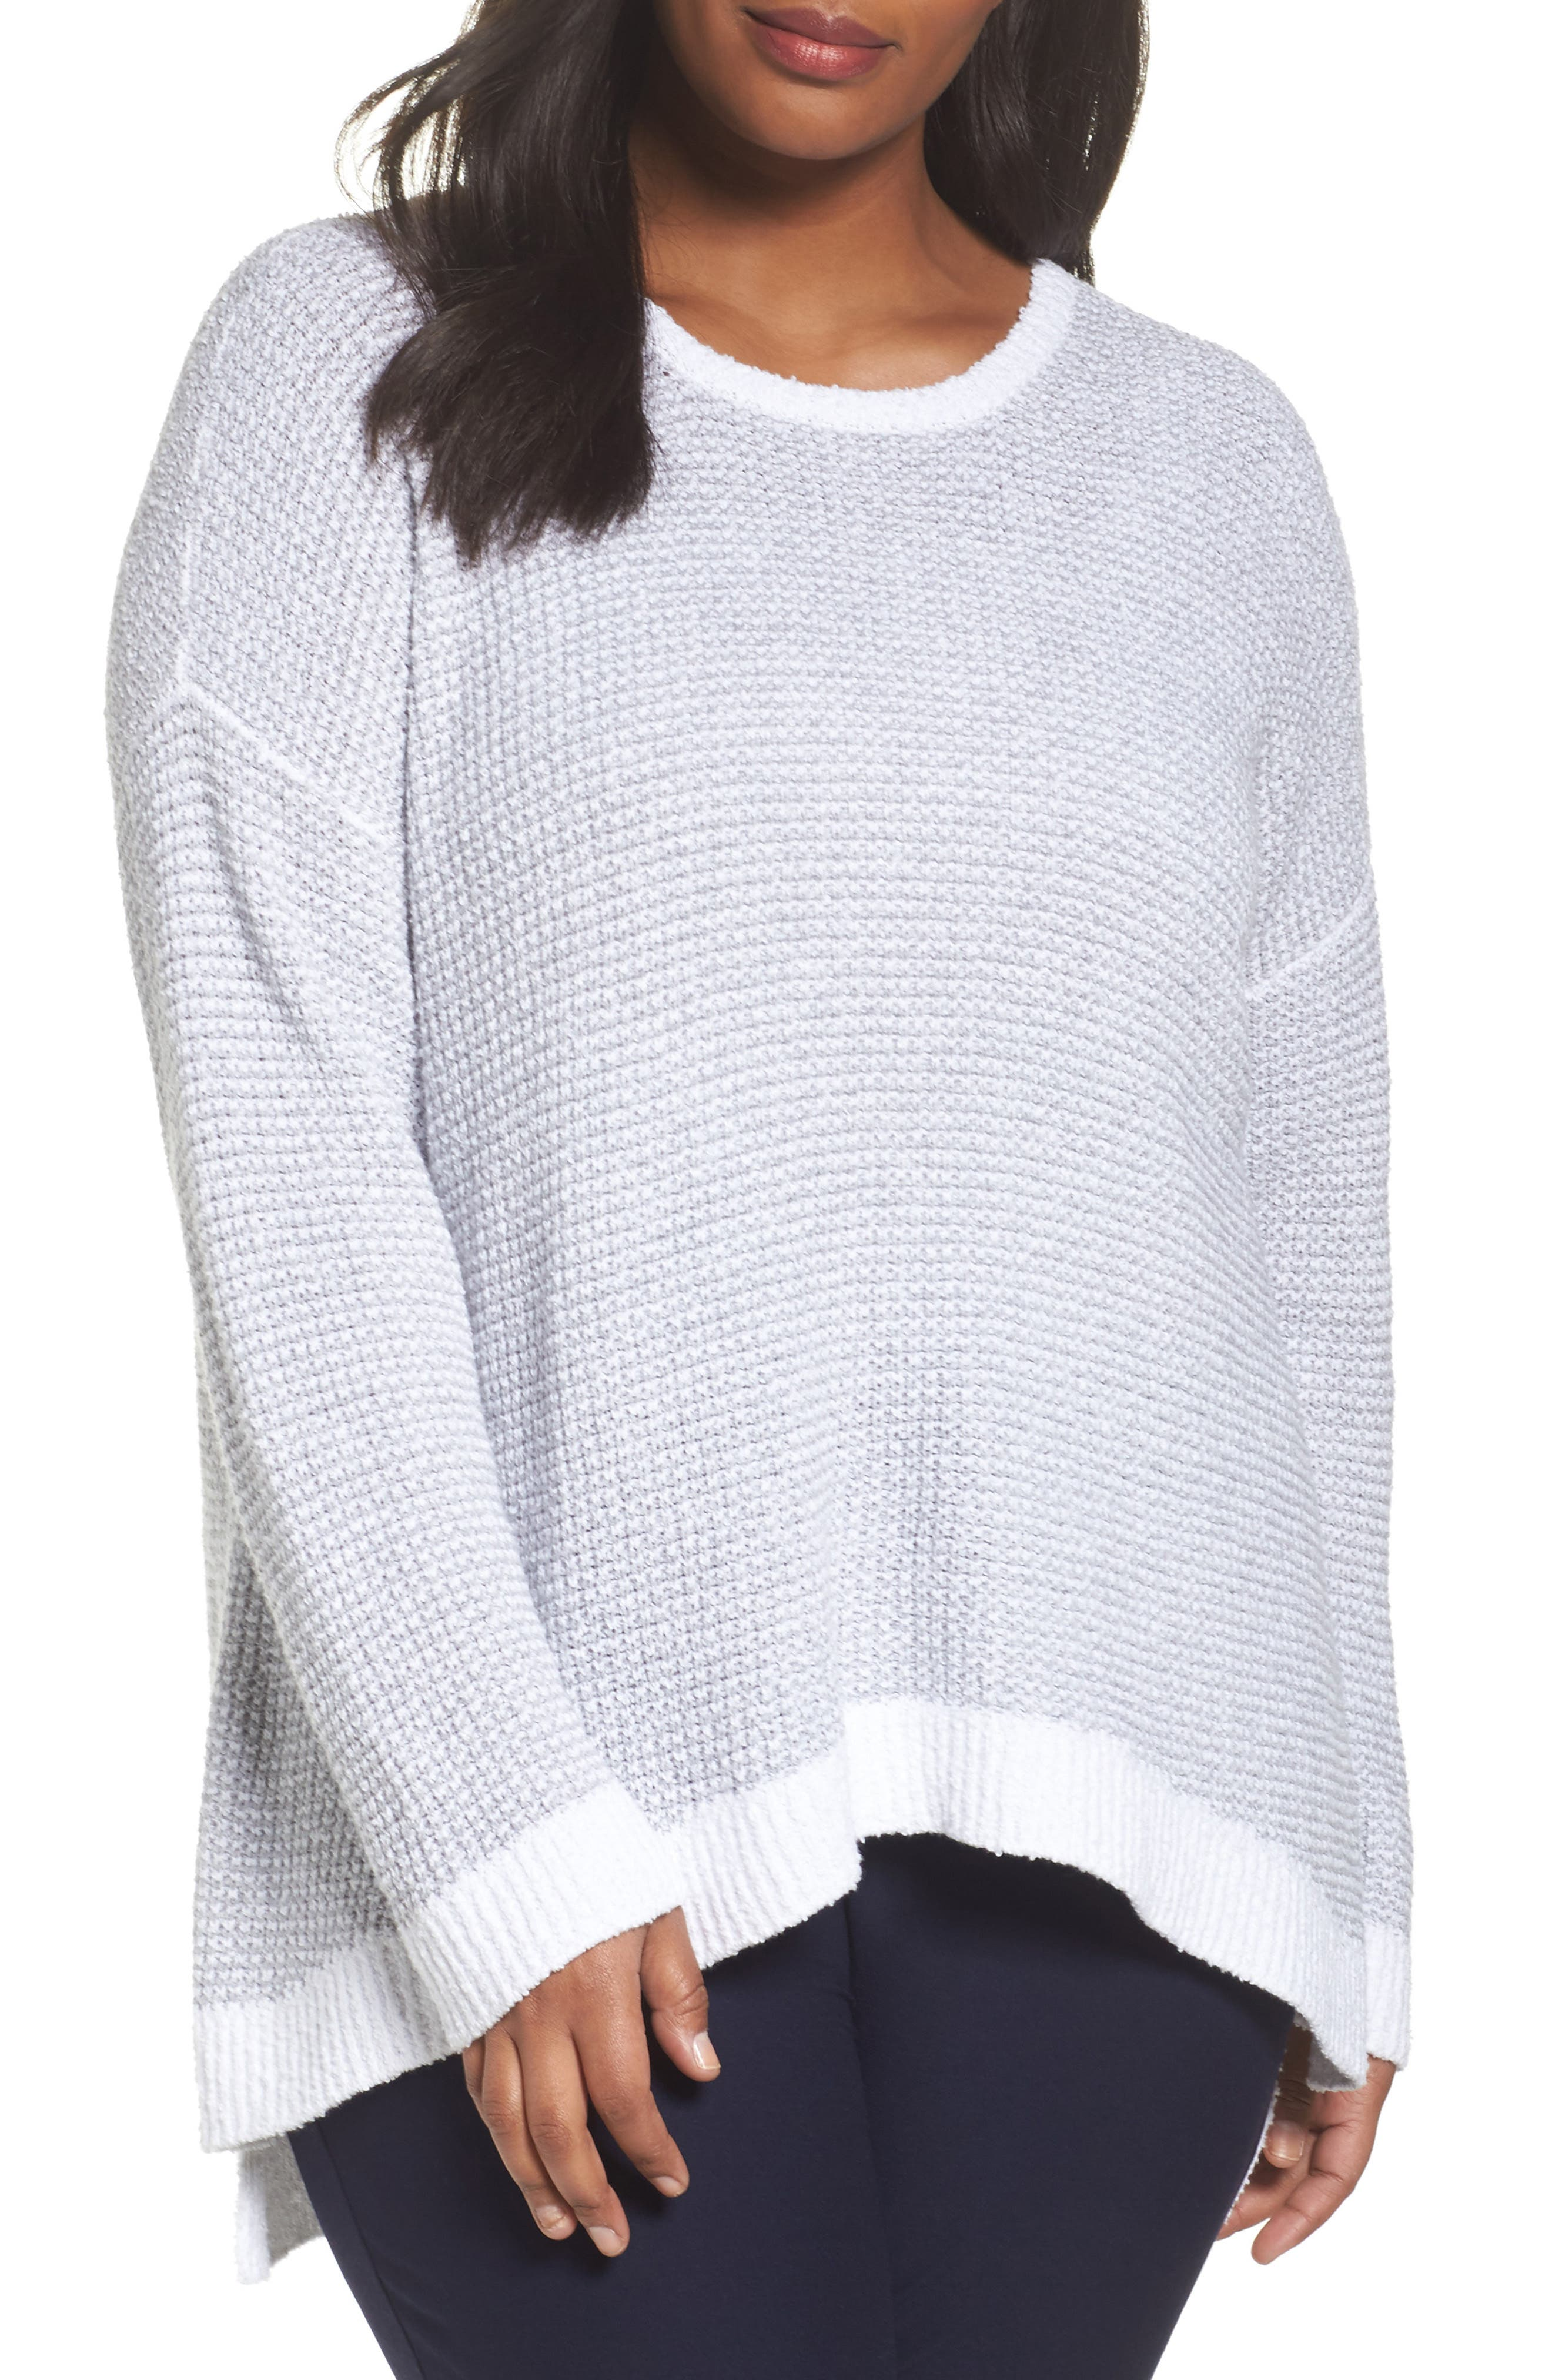 Waffled Organic Cotton Sweater,                         Main,                         color,